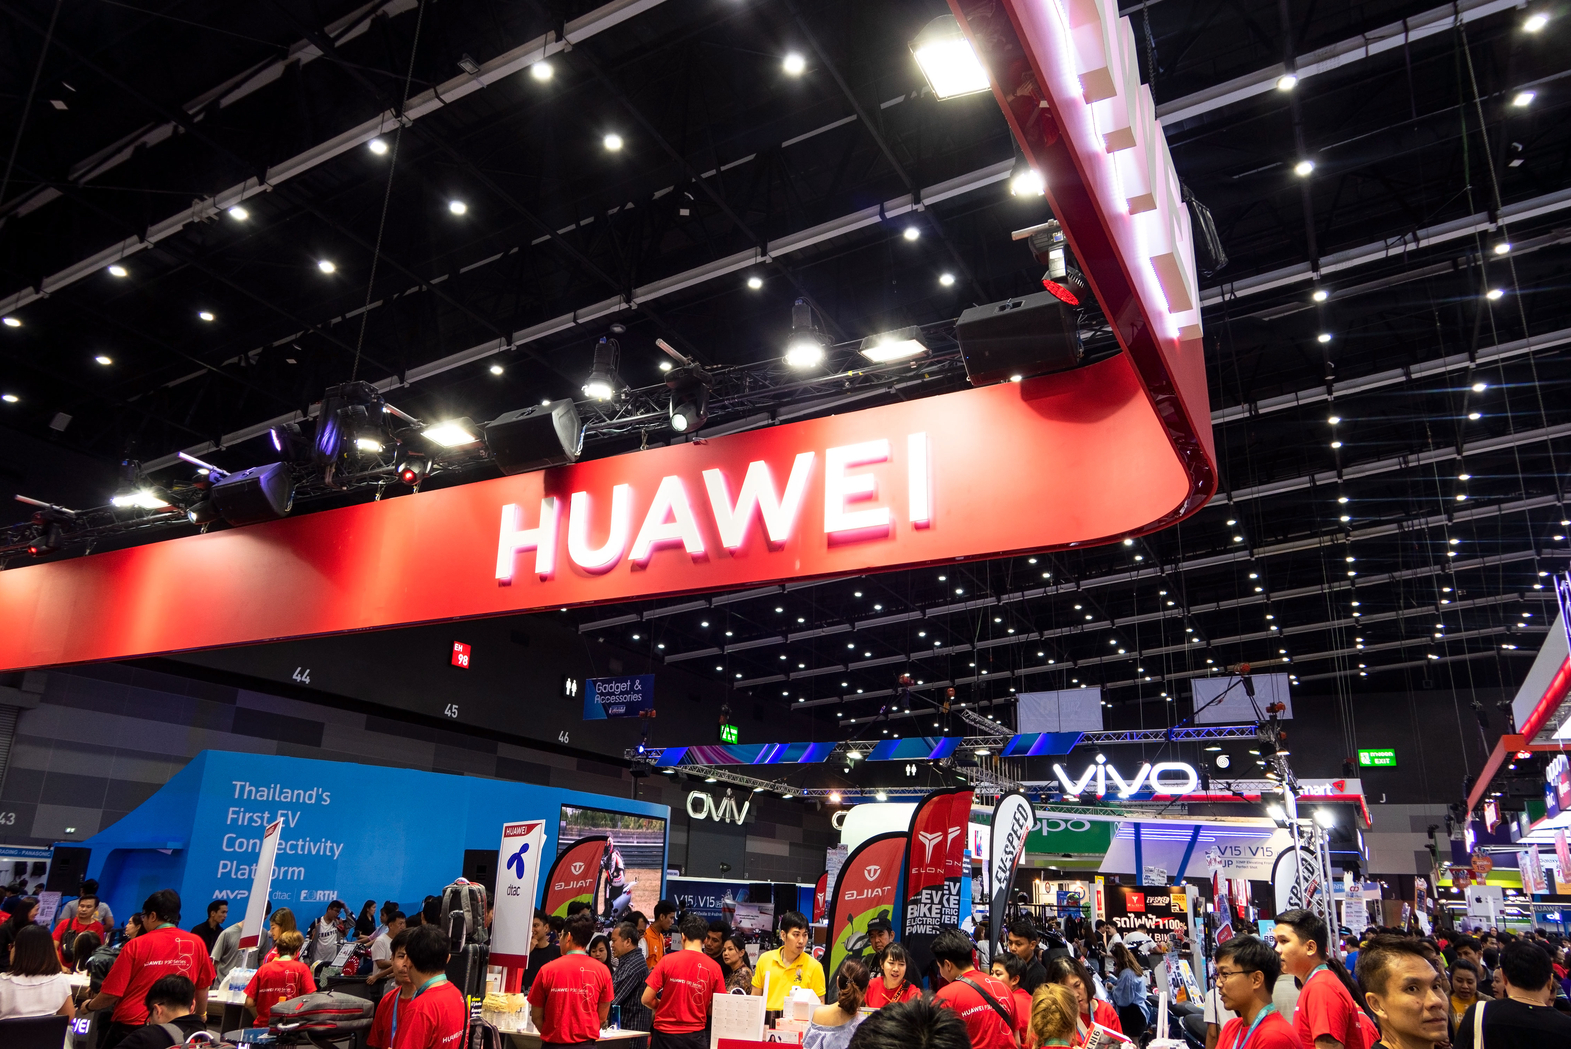 Huawei Connect conference gets underway / US House Committee holds deep space exploration hearing / US Senate holds online extremism hearing